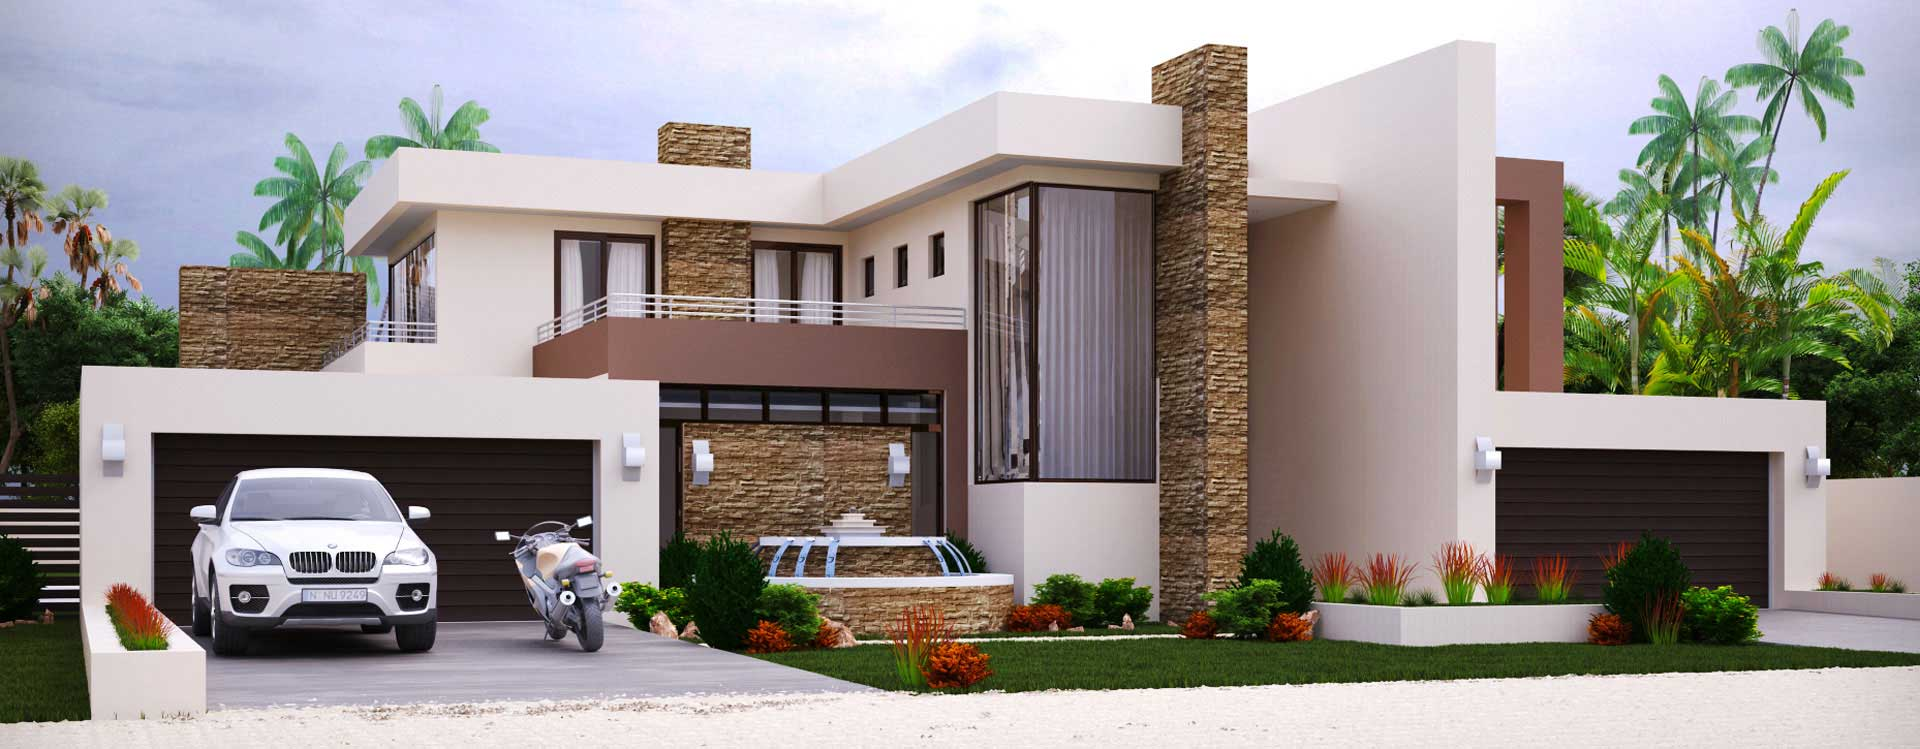 Double Storey House Plans With Balcony